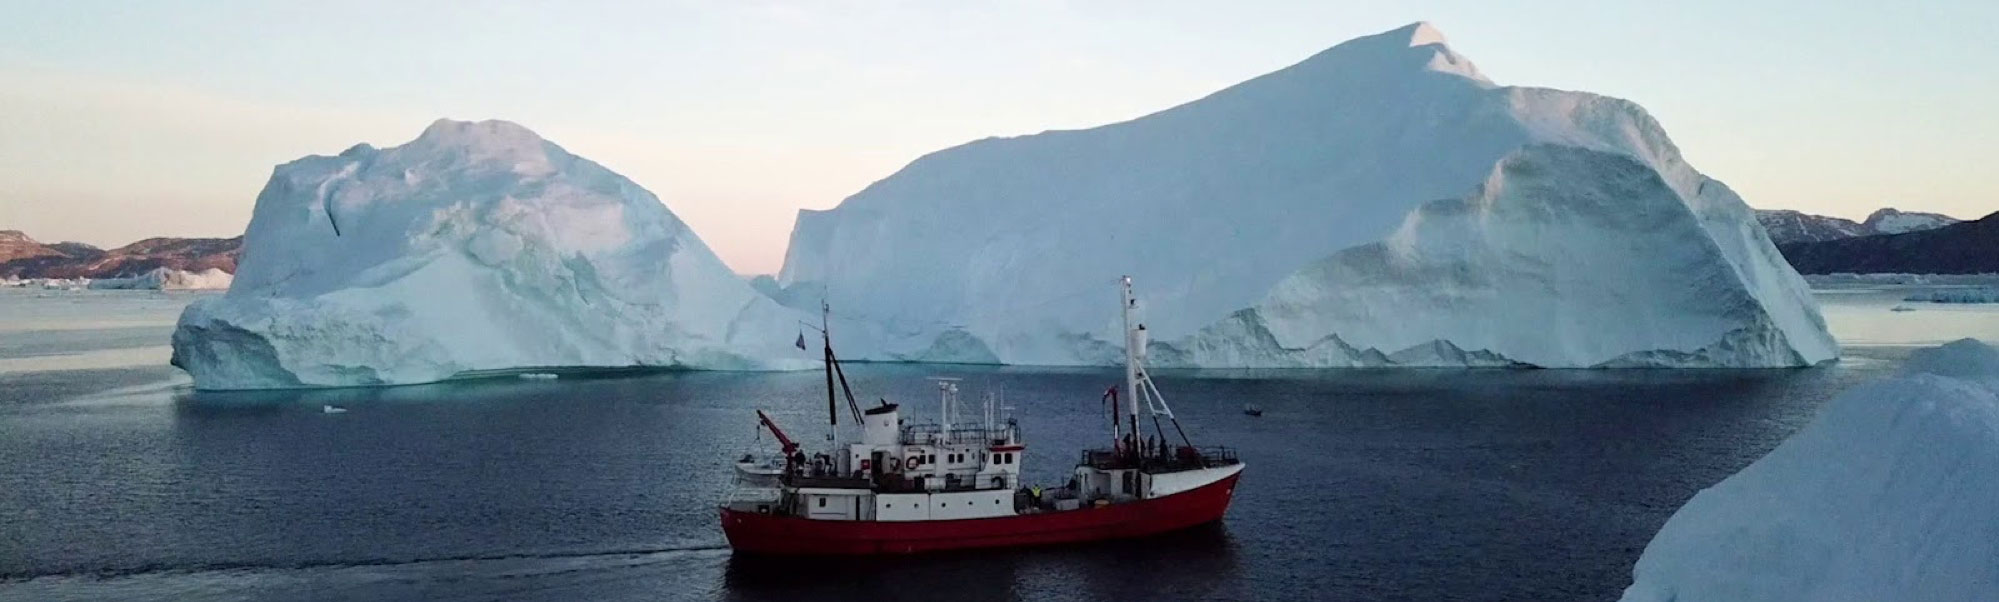 Cervino ship in the Arctic